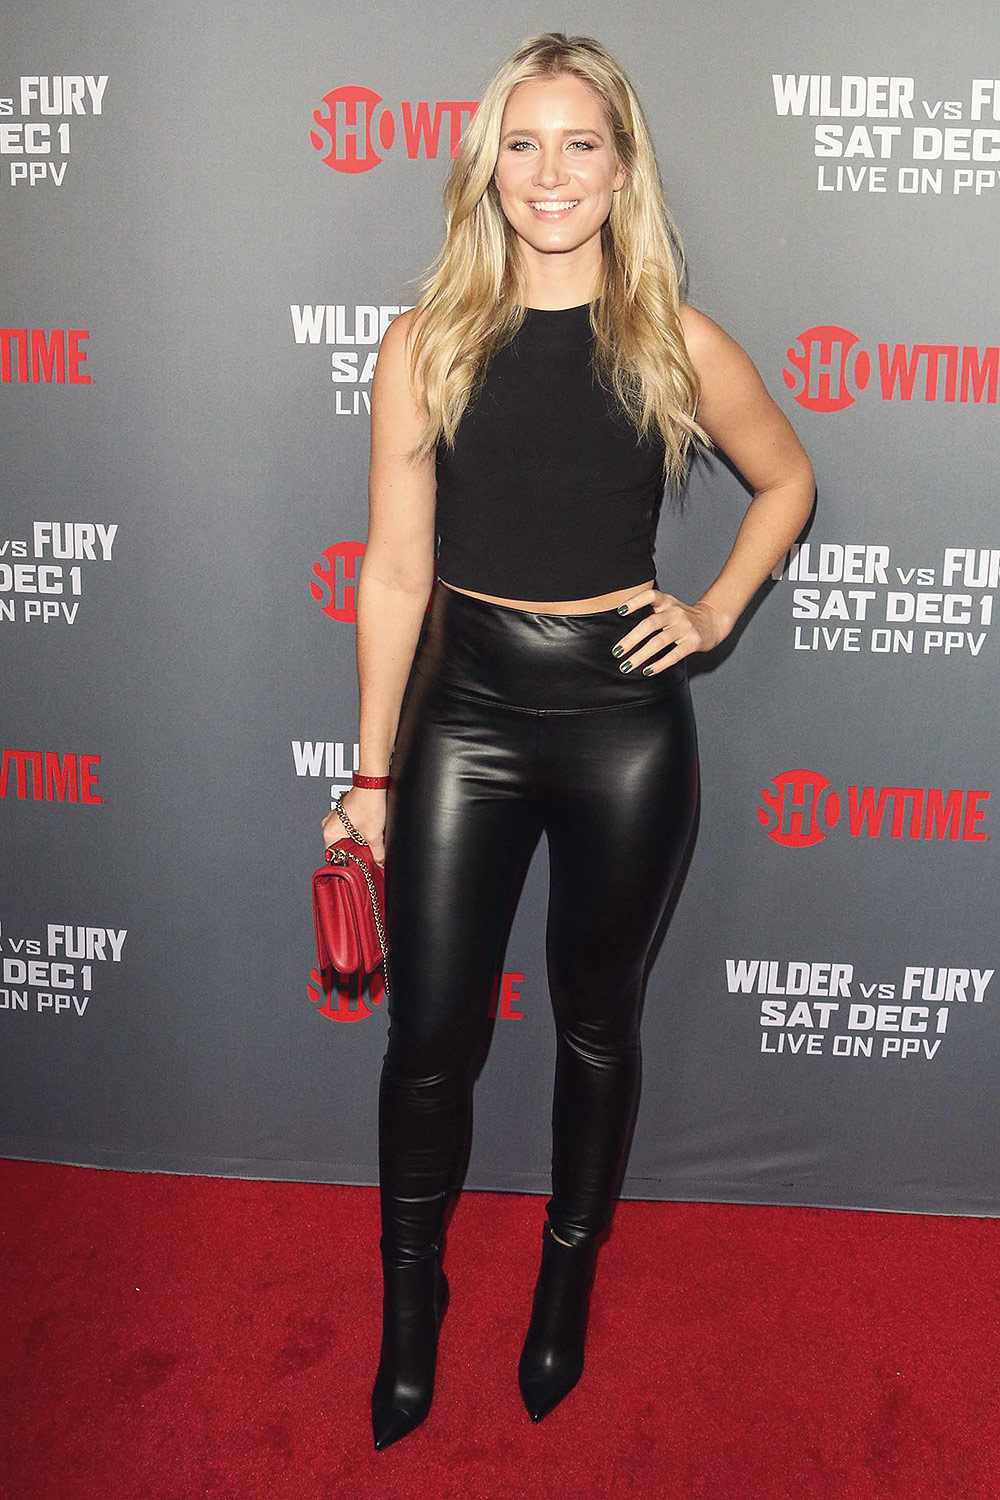 Kristine Leahy attends Heavyweight Championship of the World Wilder